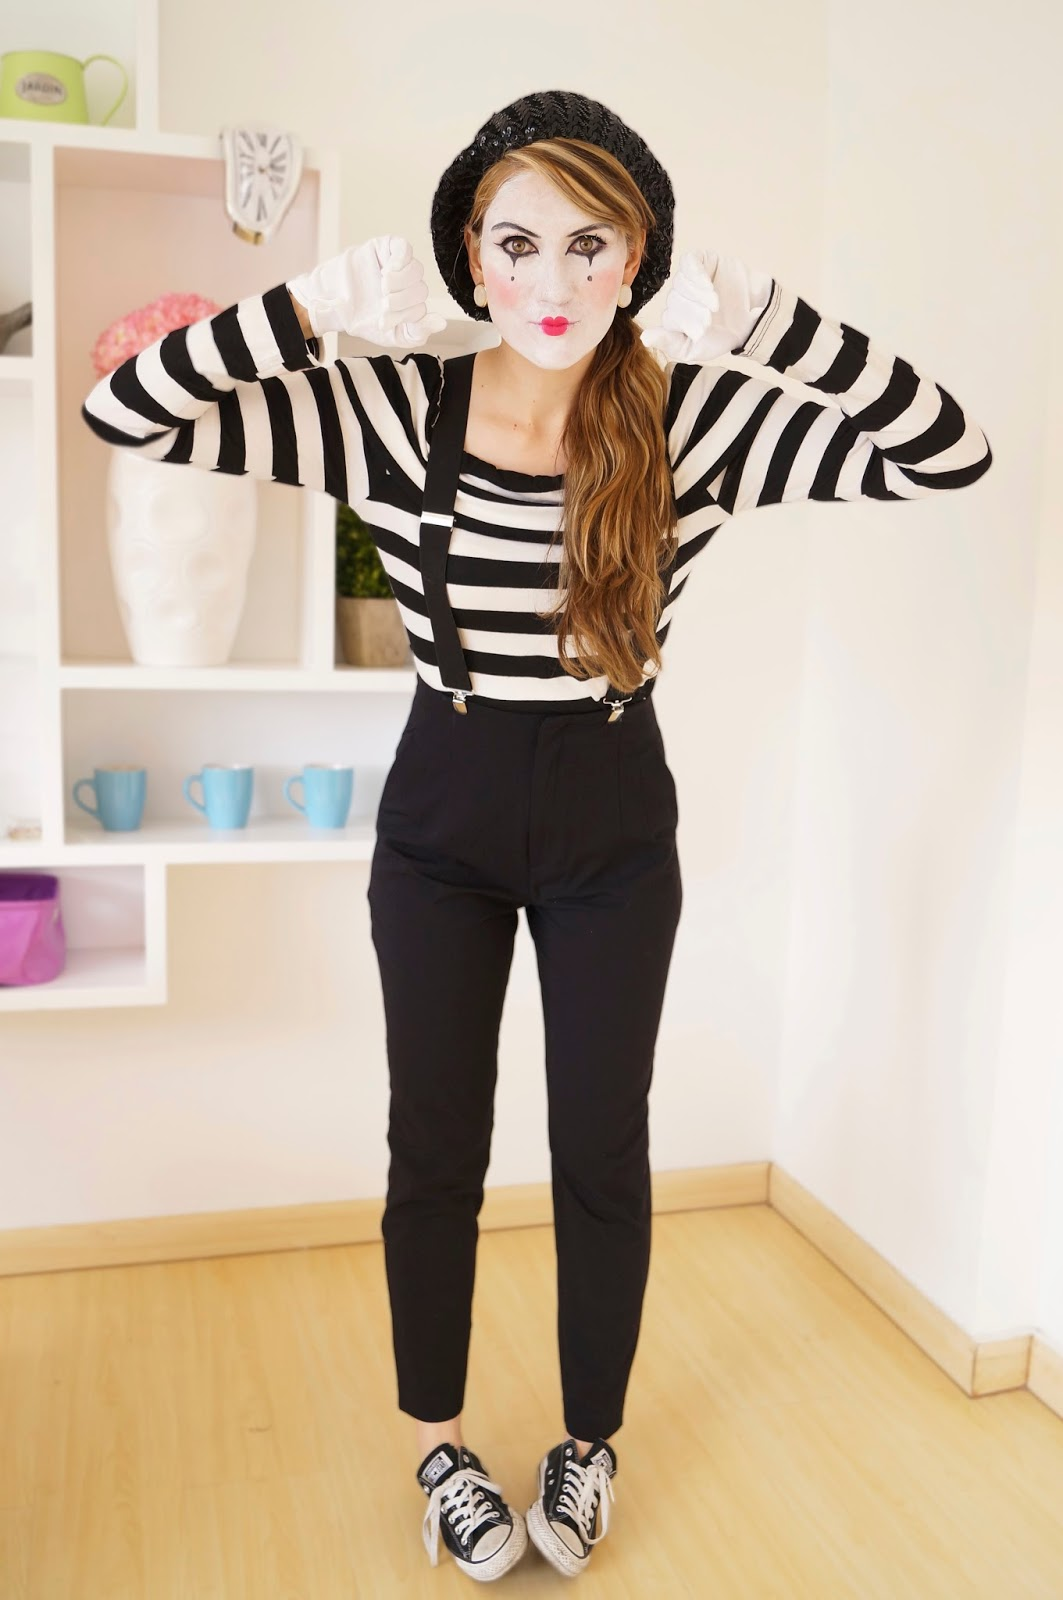 7 Creative Last Minute DIY Halloween Costumes | Design ...